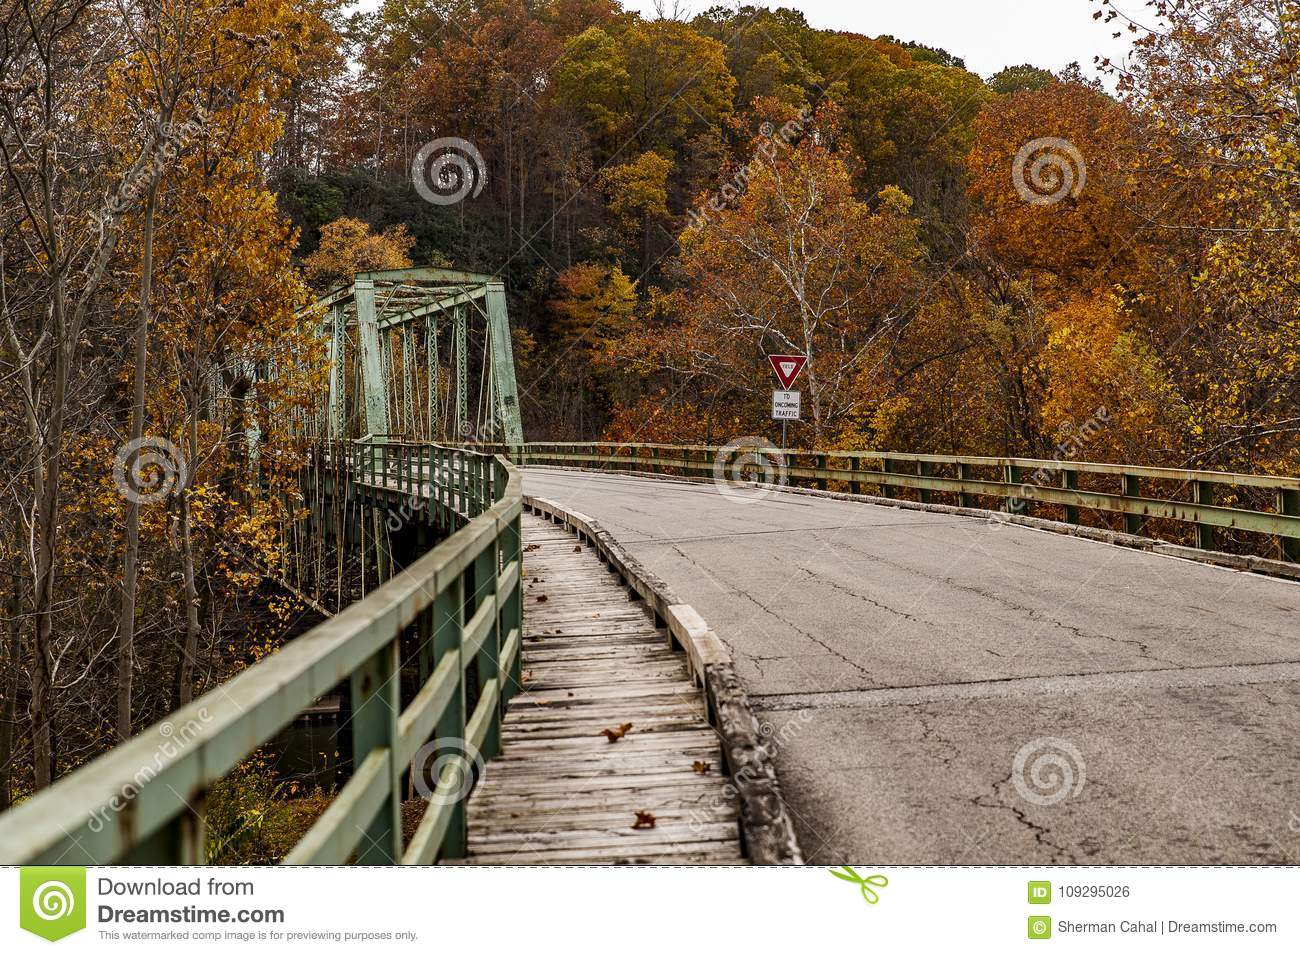 Historic Green Truss Bridge in Autumn - Layton Bridge - Fayette County, Pennsylvania